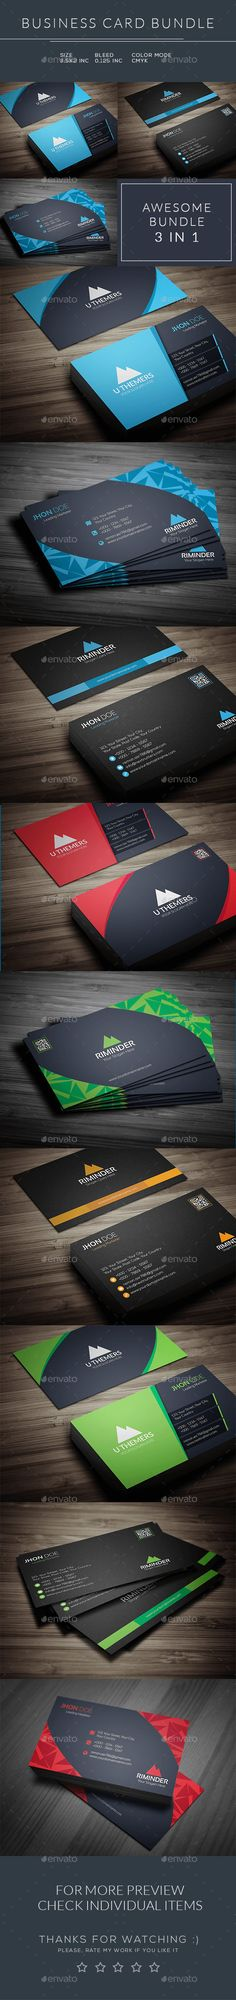 Business Card Bundle 3 in 1 - Business Cards Print Templates